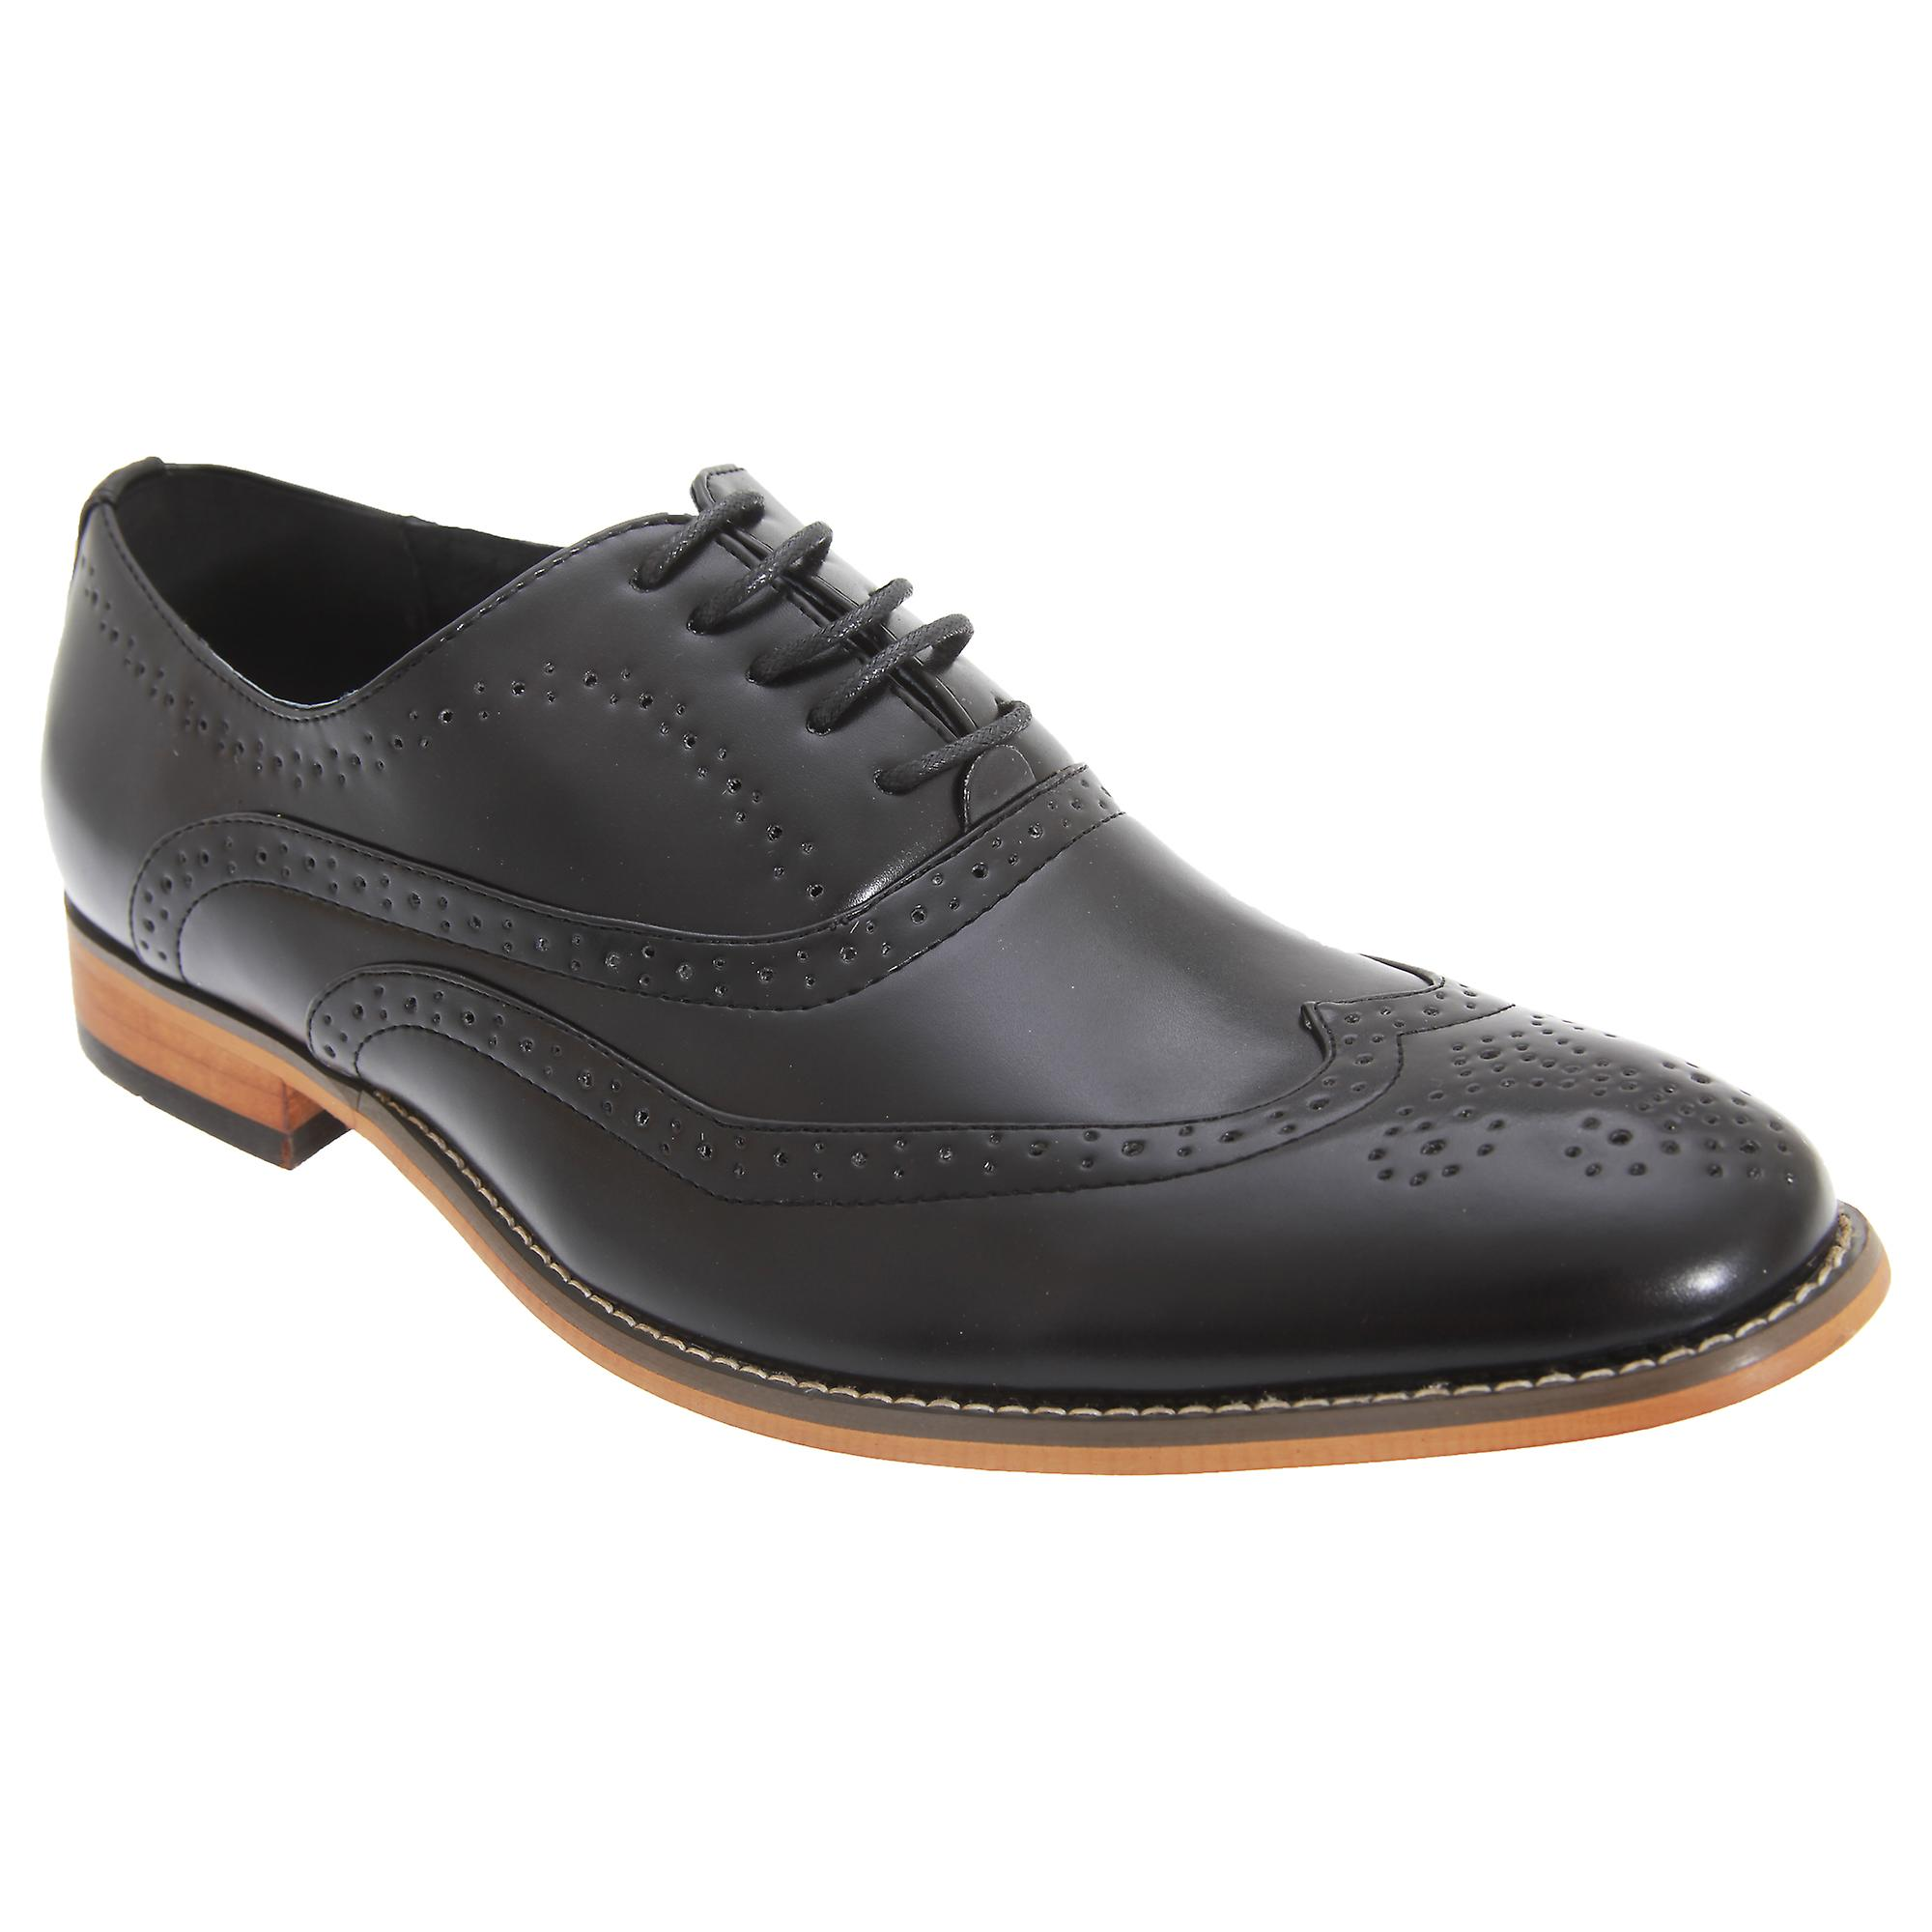 Goor Mens Shoes 5 Eyelet Brogue Oxford Shoes Mens 84d6b6